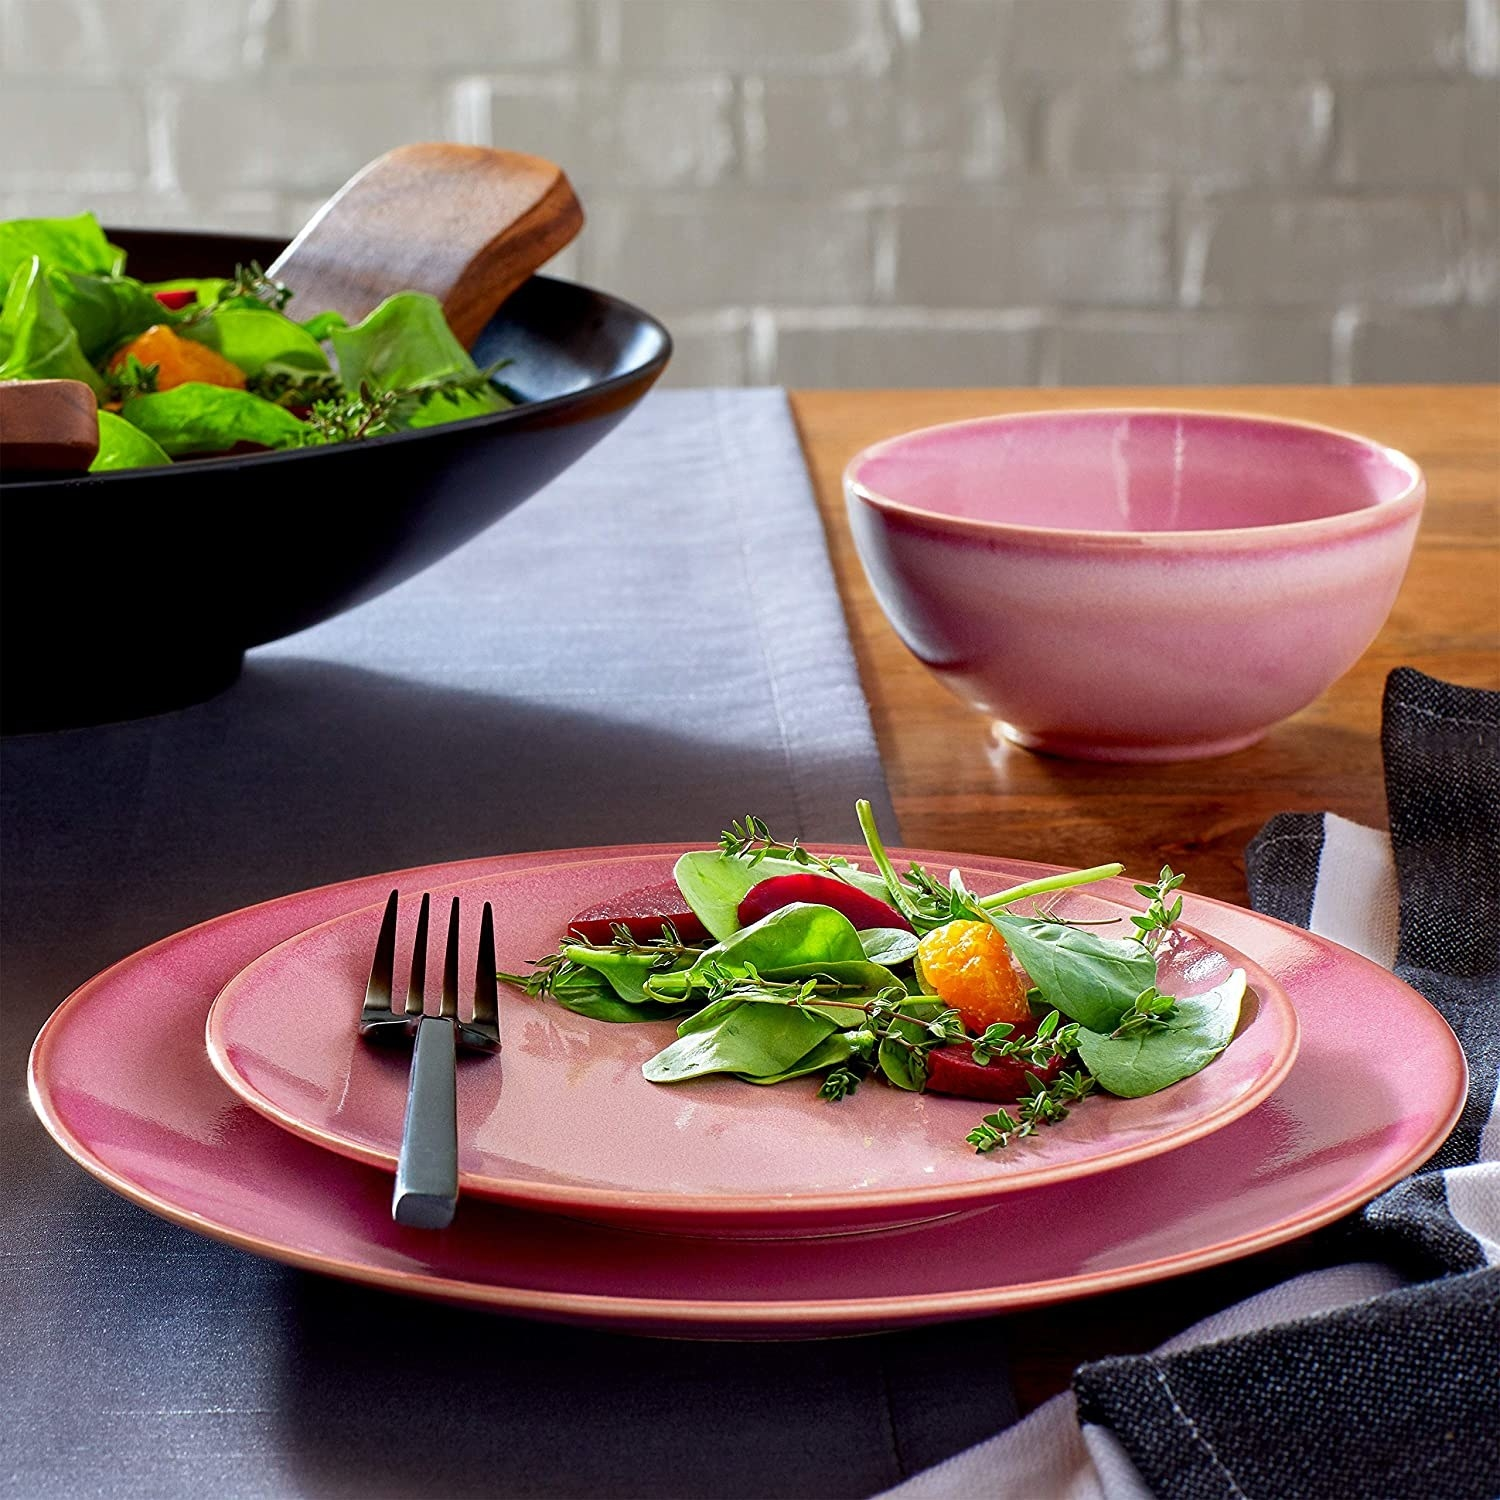 A dinner plate, salad plate, and bowl